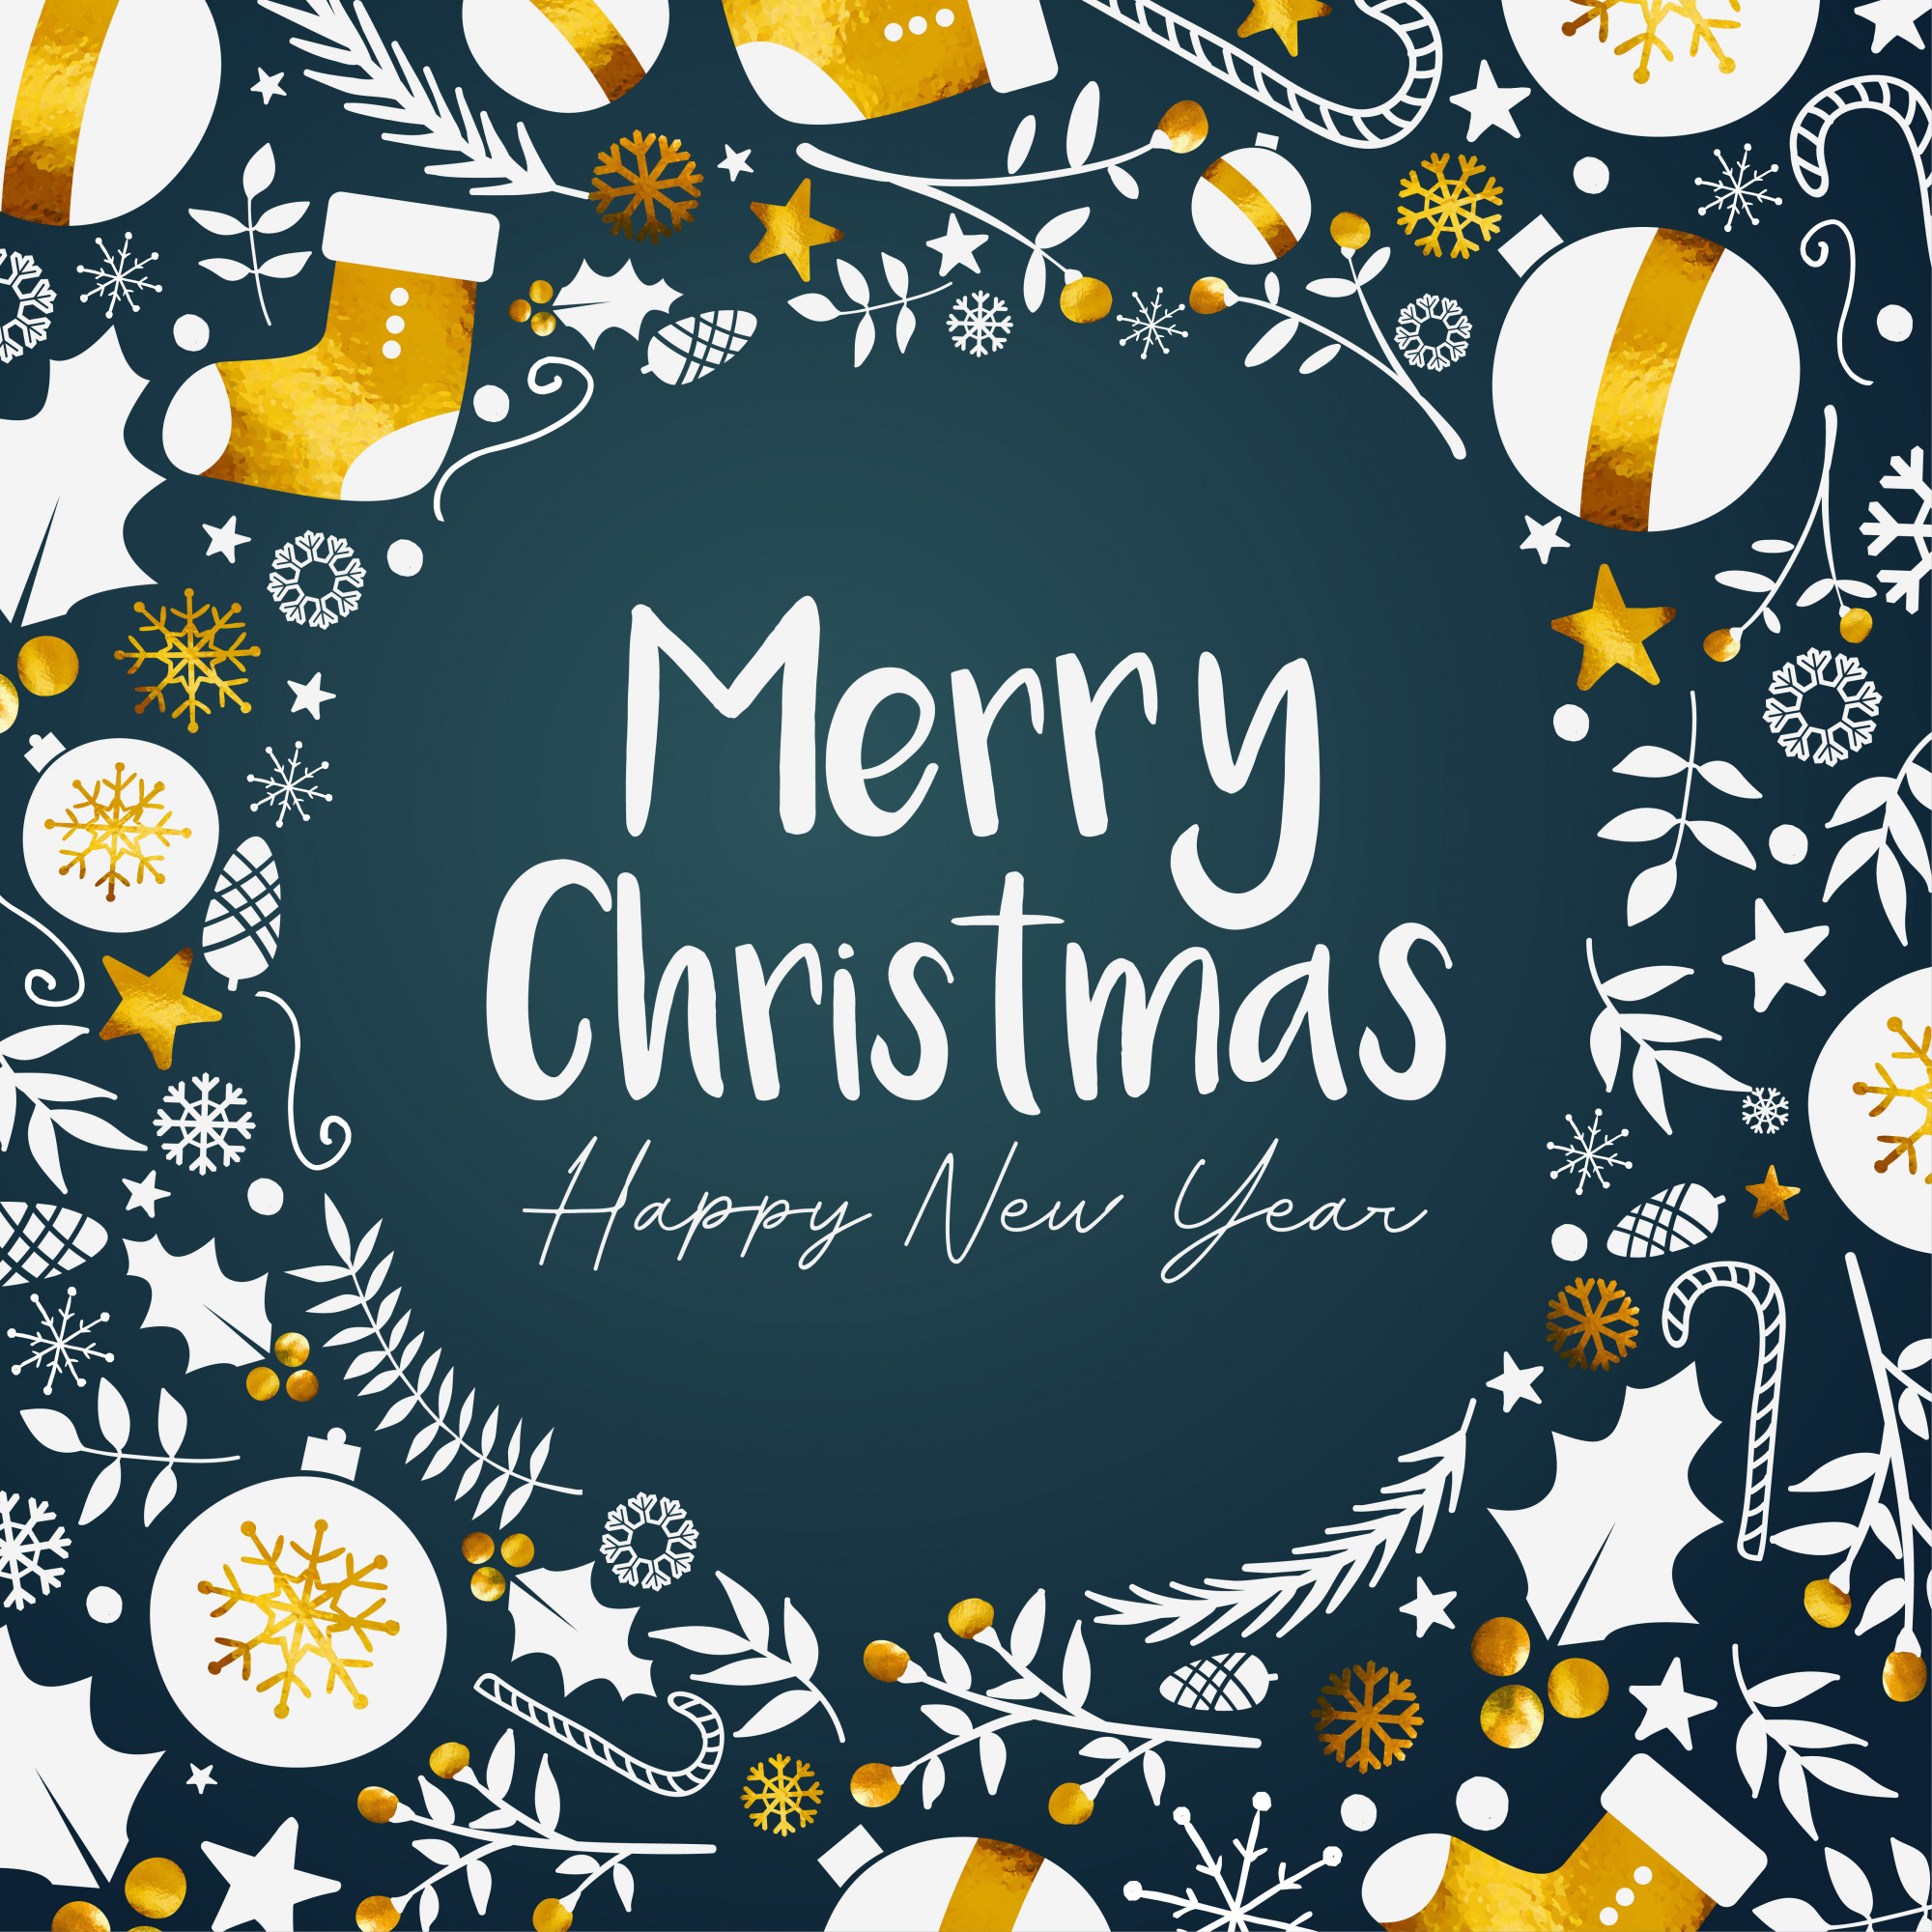 Merry Christmas Happy New Year Golden Dark Teal Background